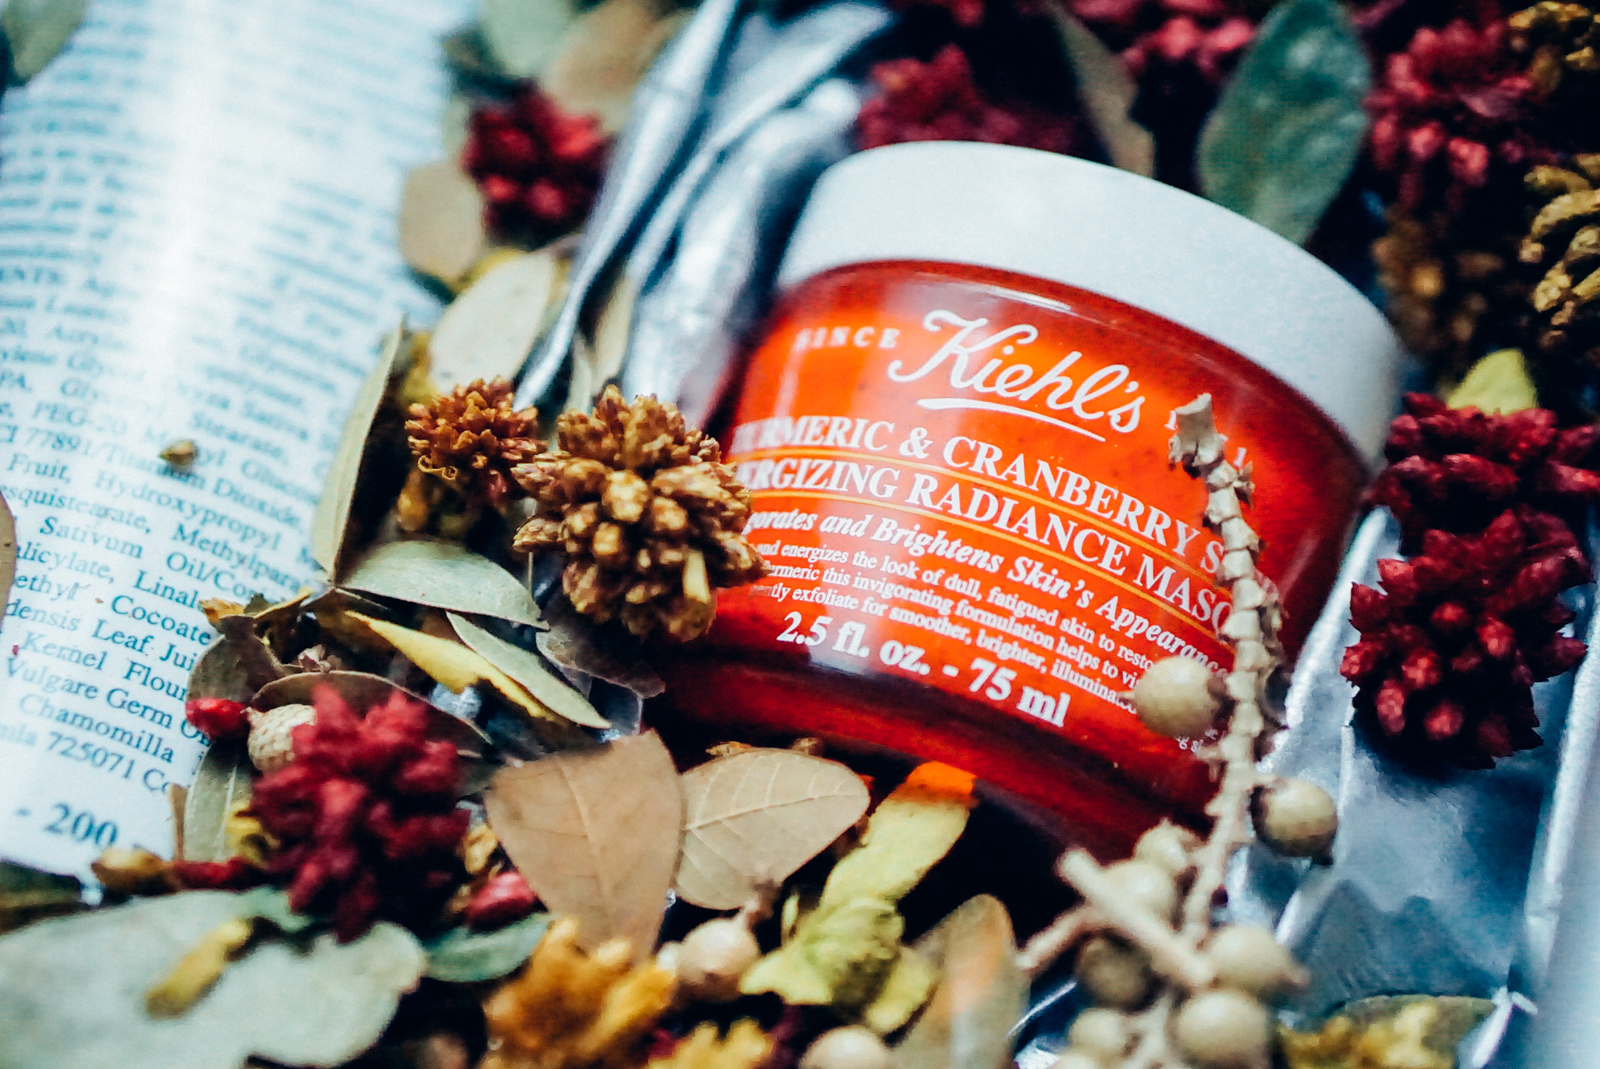 Mặt nạ Kiehls Turmeric & Cranberry Seed Energizing Radiance Masque